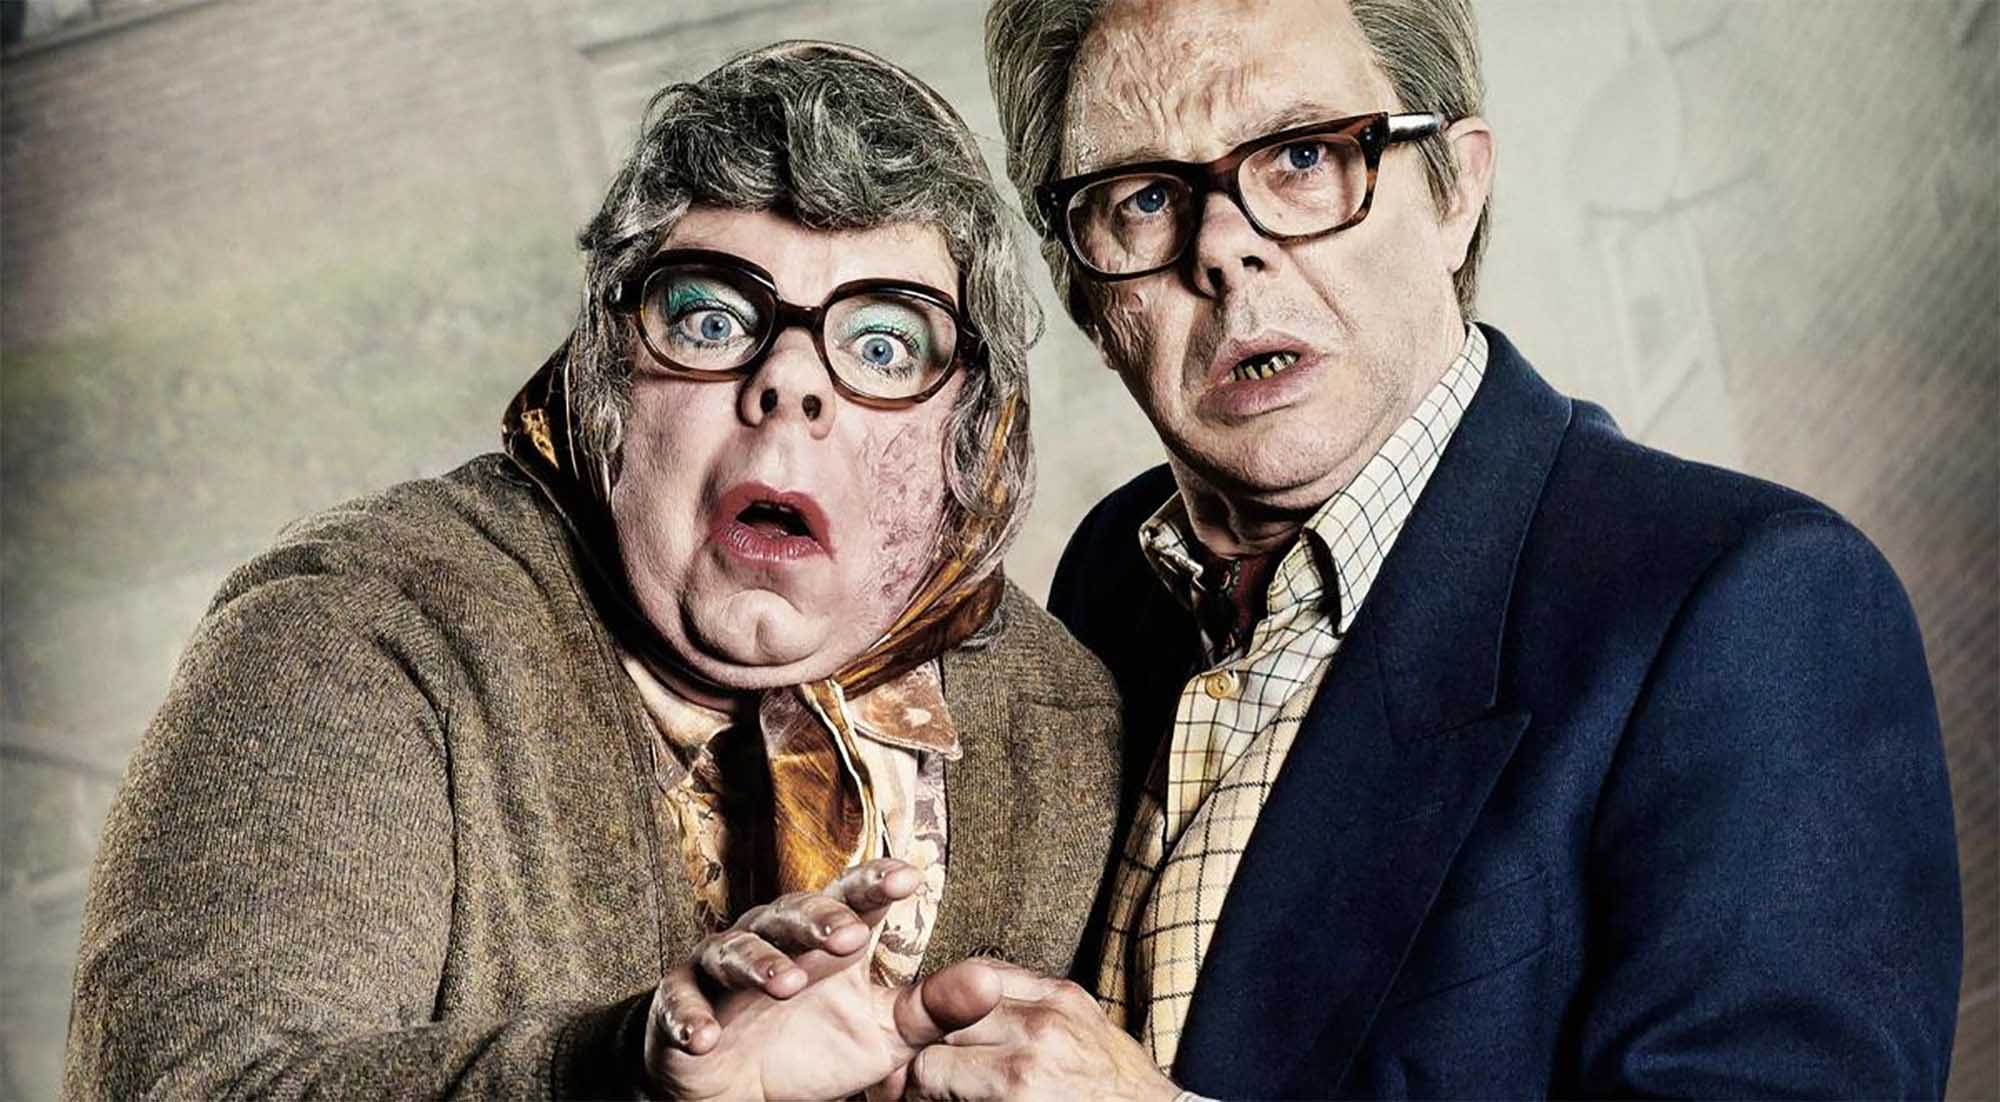 The biggest freaks in the entertainment industry are back – and we mean that in the nicest way possible. The twisted minds behind the darkest of dark comedies are taking 'The League of Gentlemen' on a much-anticipated UK tour. Horror lovers and fans of the darker side of comedy, get ready for some bingeworthy material.